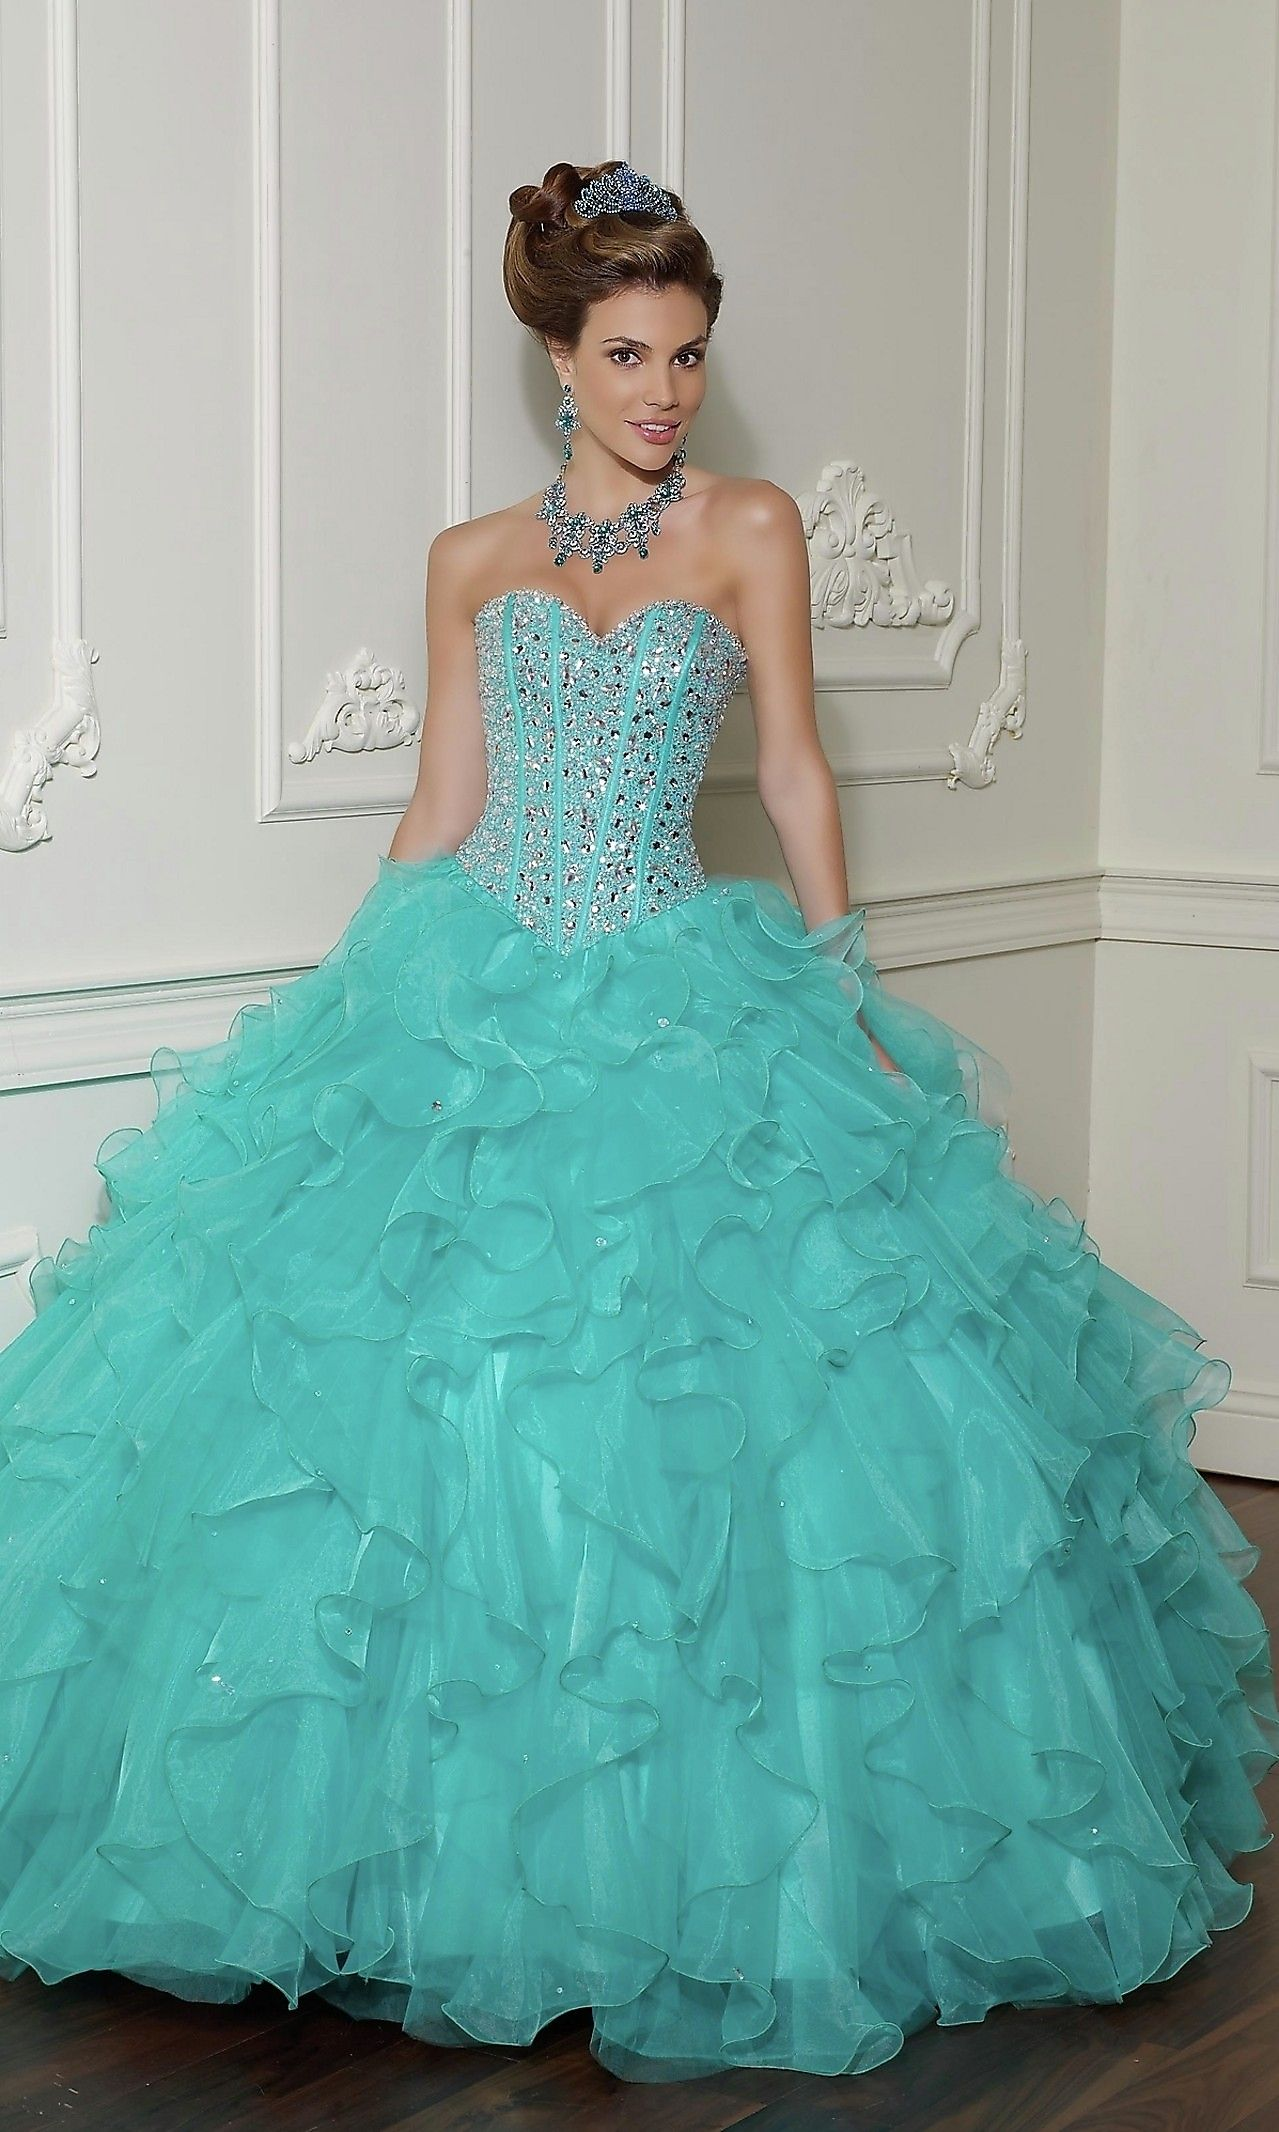 my sweet 16 dress!!!!! <3 i\'m in love with it!!! | If It Doesn\'t ...